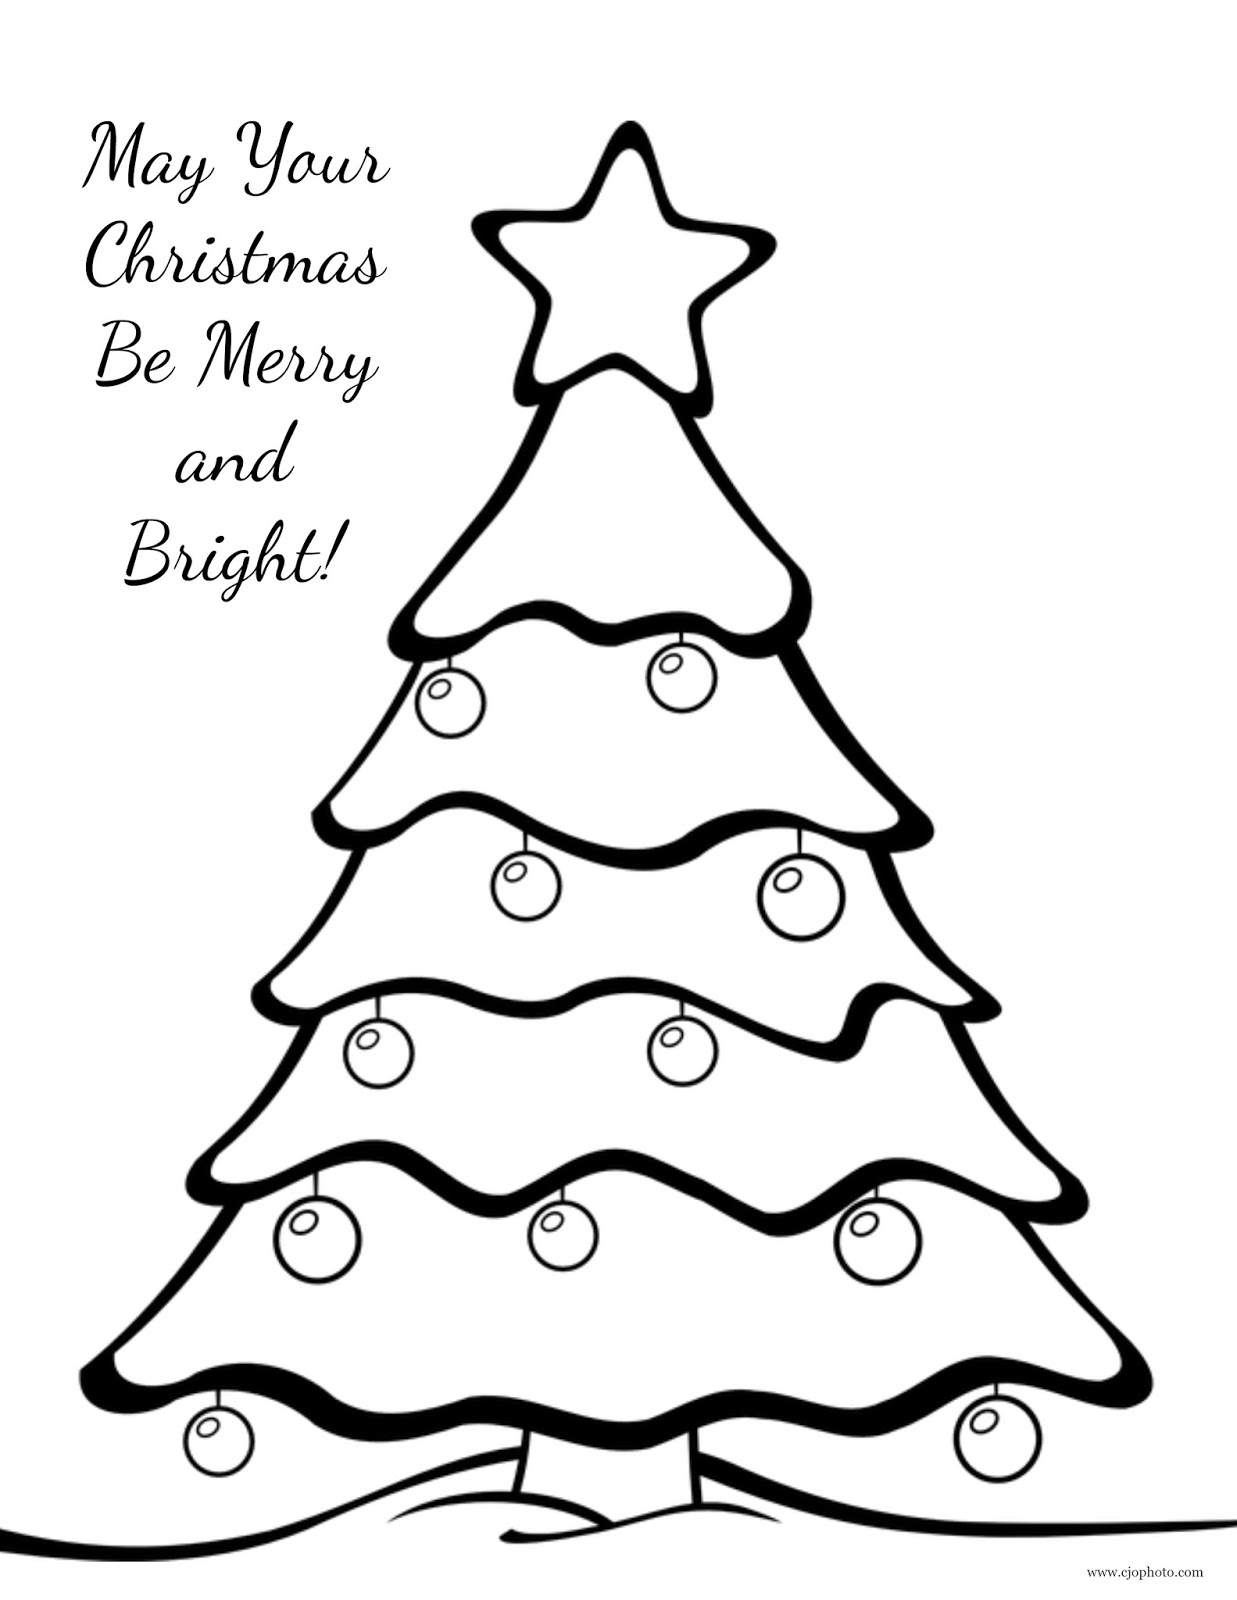 xmas tree coloring pages christmas tree coloring pages for childrens printable for free pages xmas tree coloring